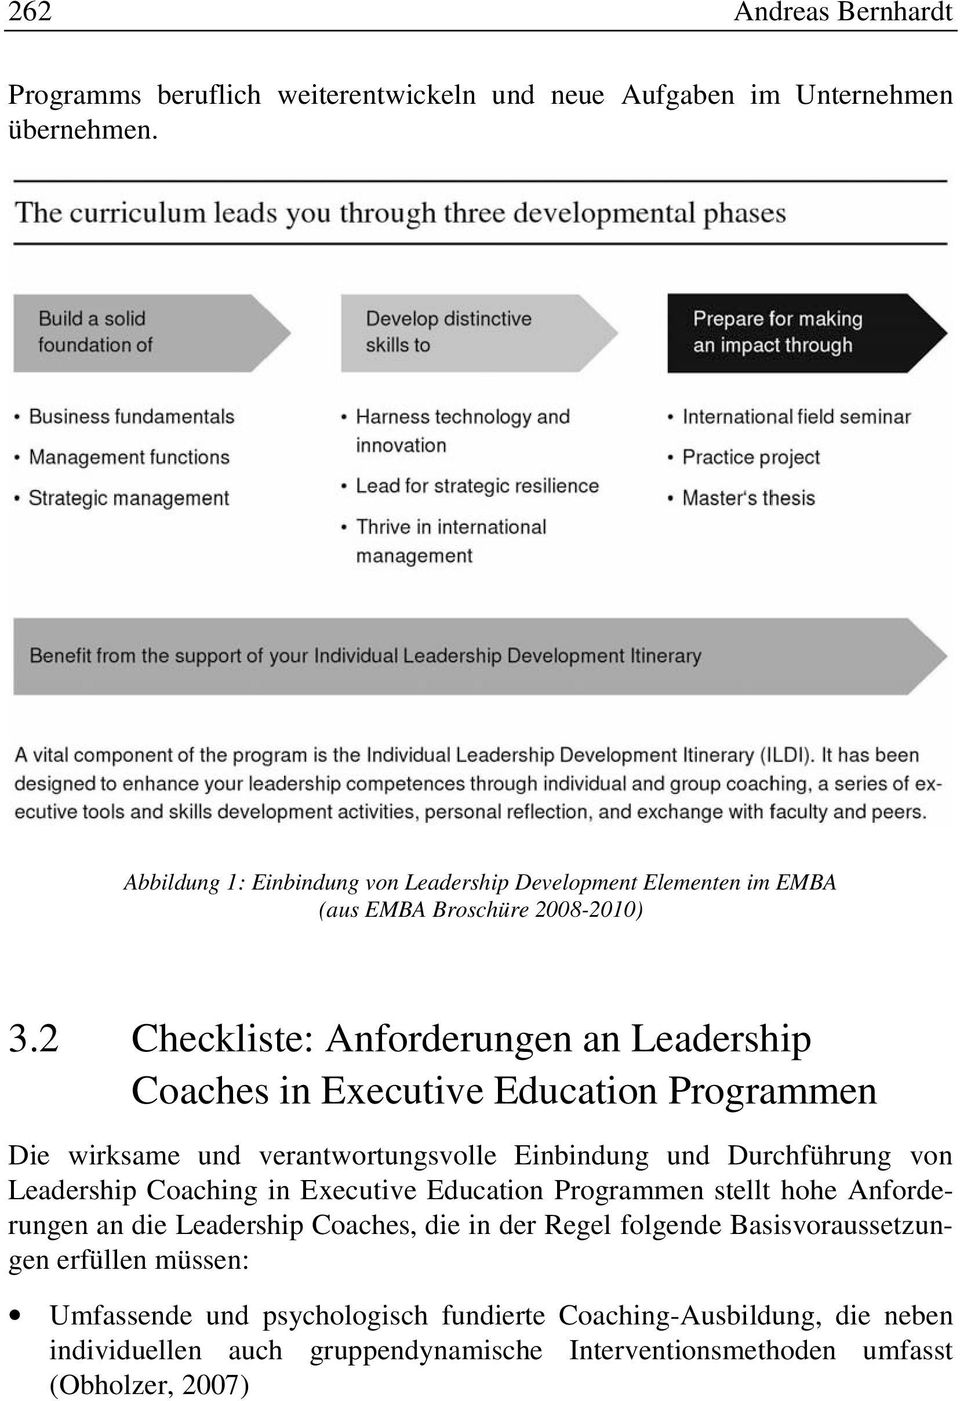 2 Checkliste: Anforderungen an Leadership Coaches in Executive Education Programmen Die wirksame und verantwortungsvolle Einbindung und Durchführung von Leadership